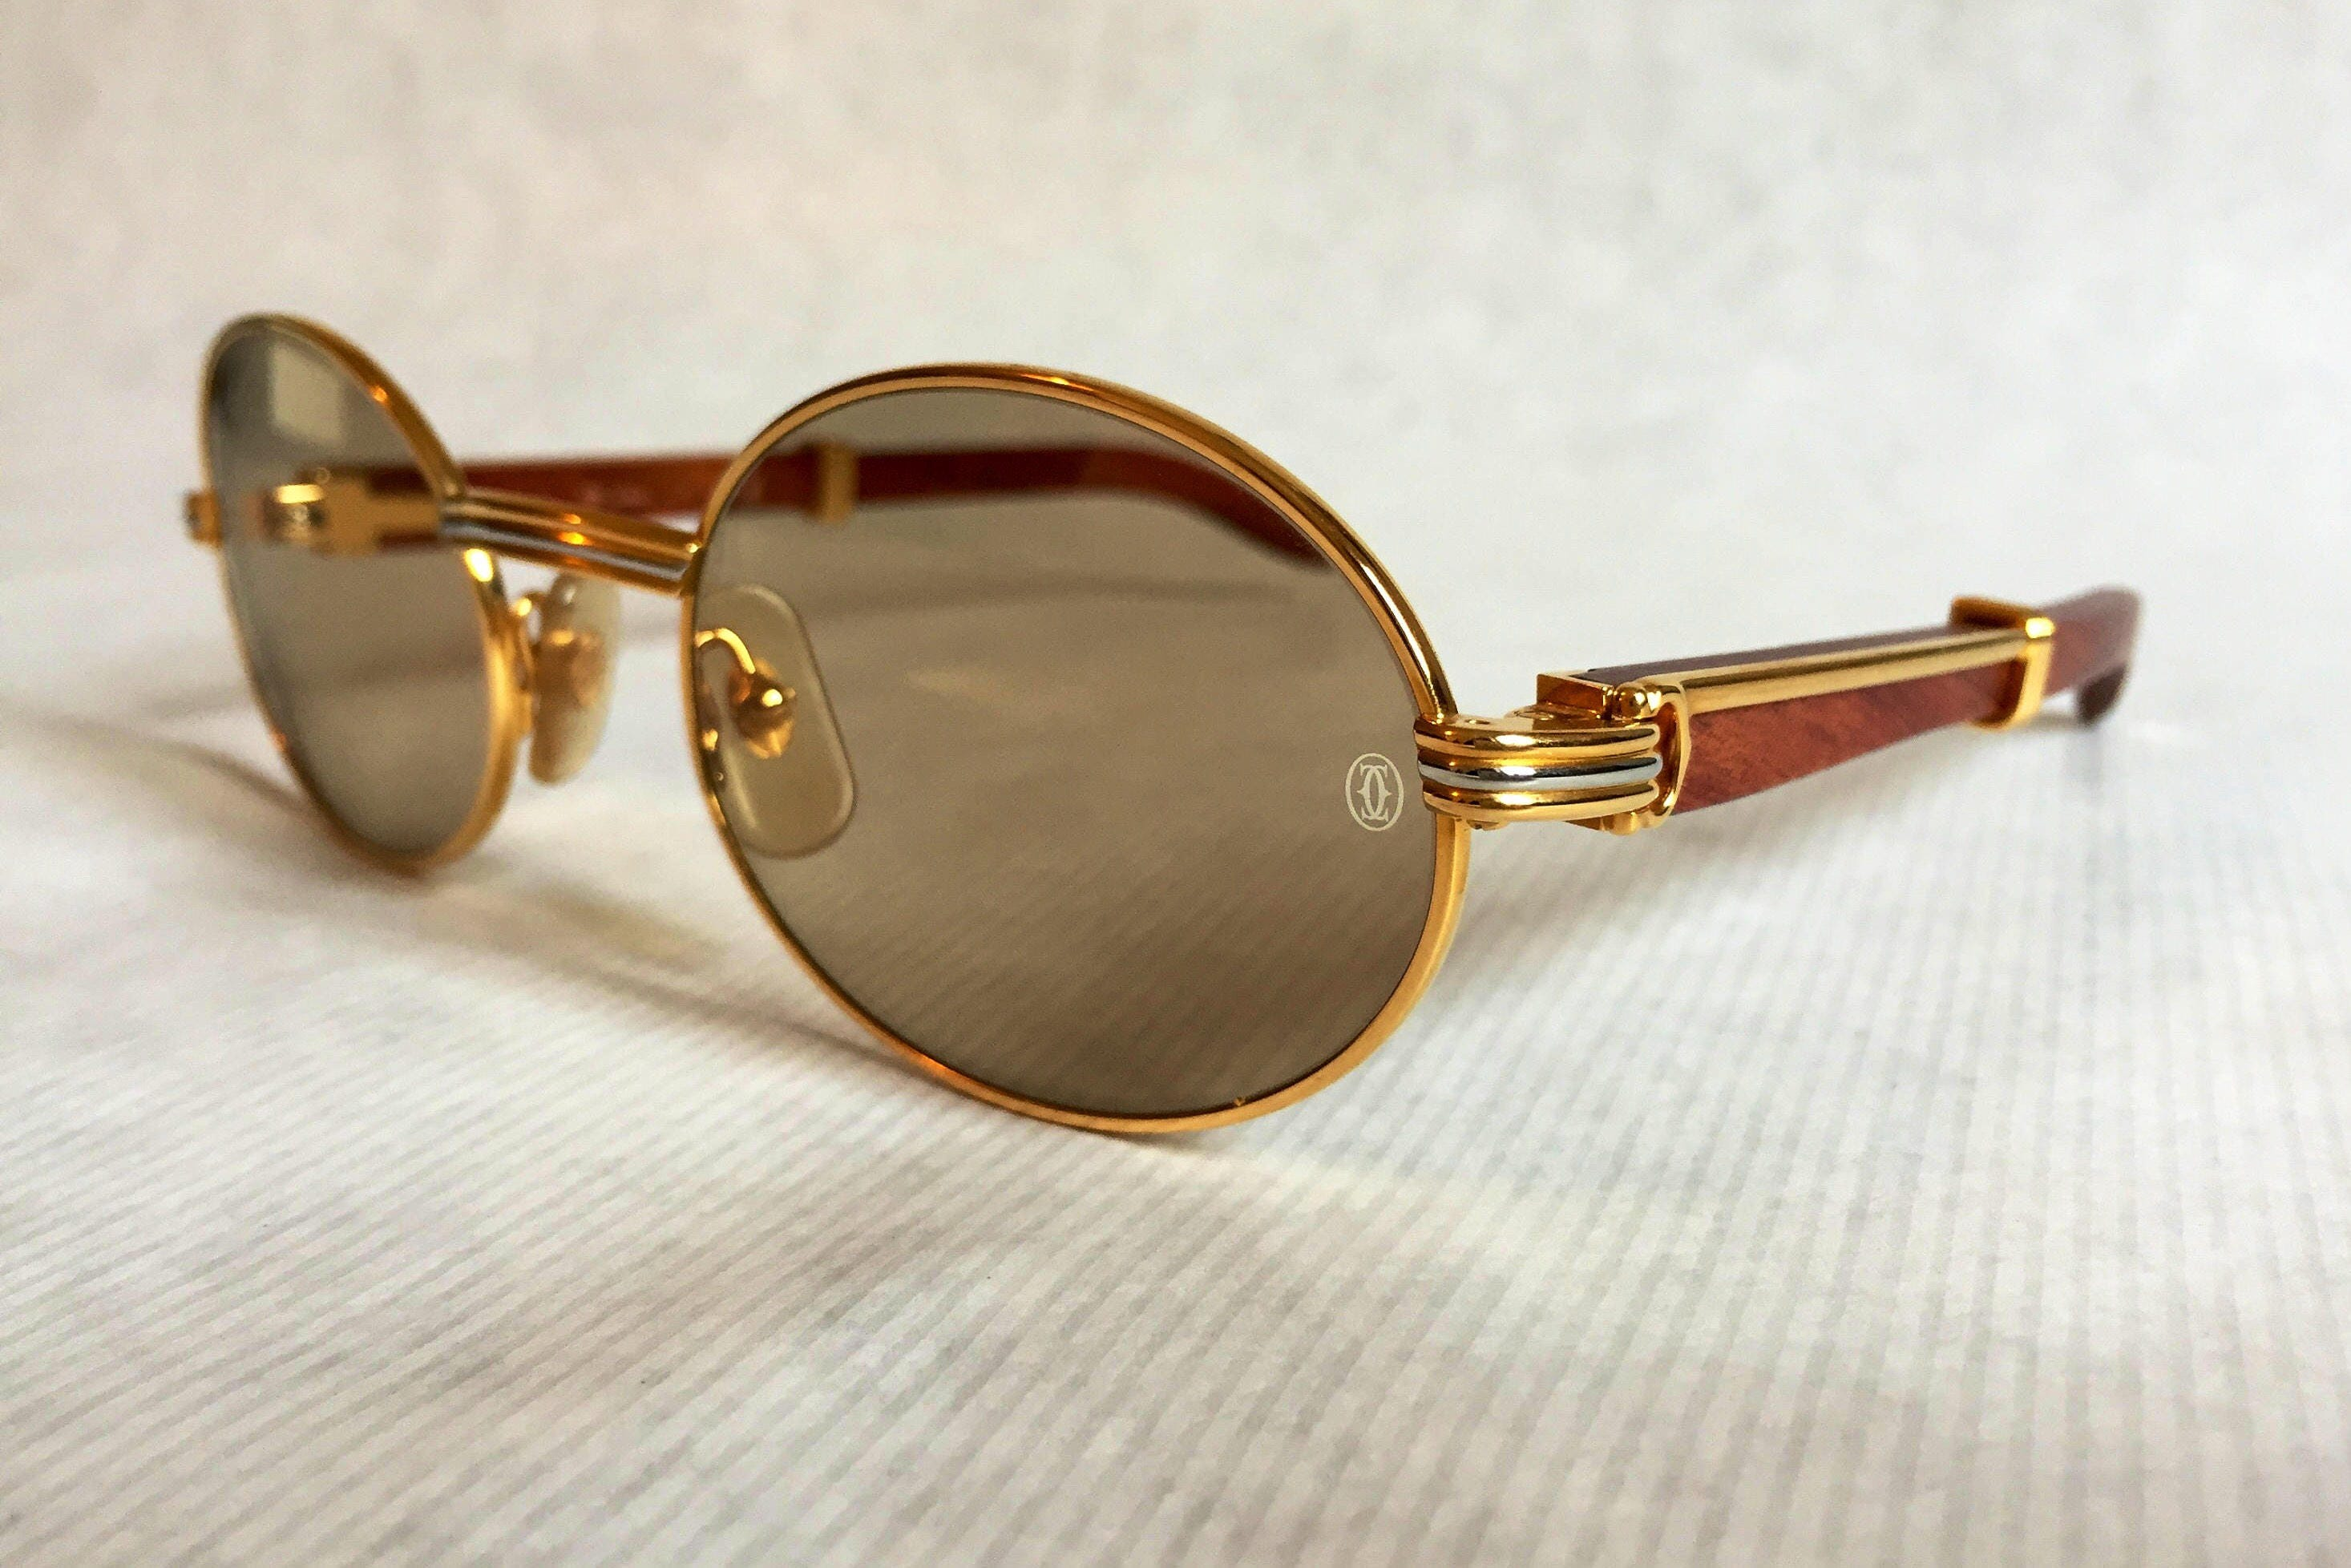 Cartier Giverny Vintage Sunglasses - Large Size - New Old Stock ...